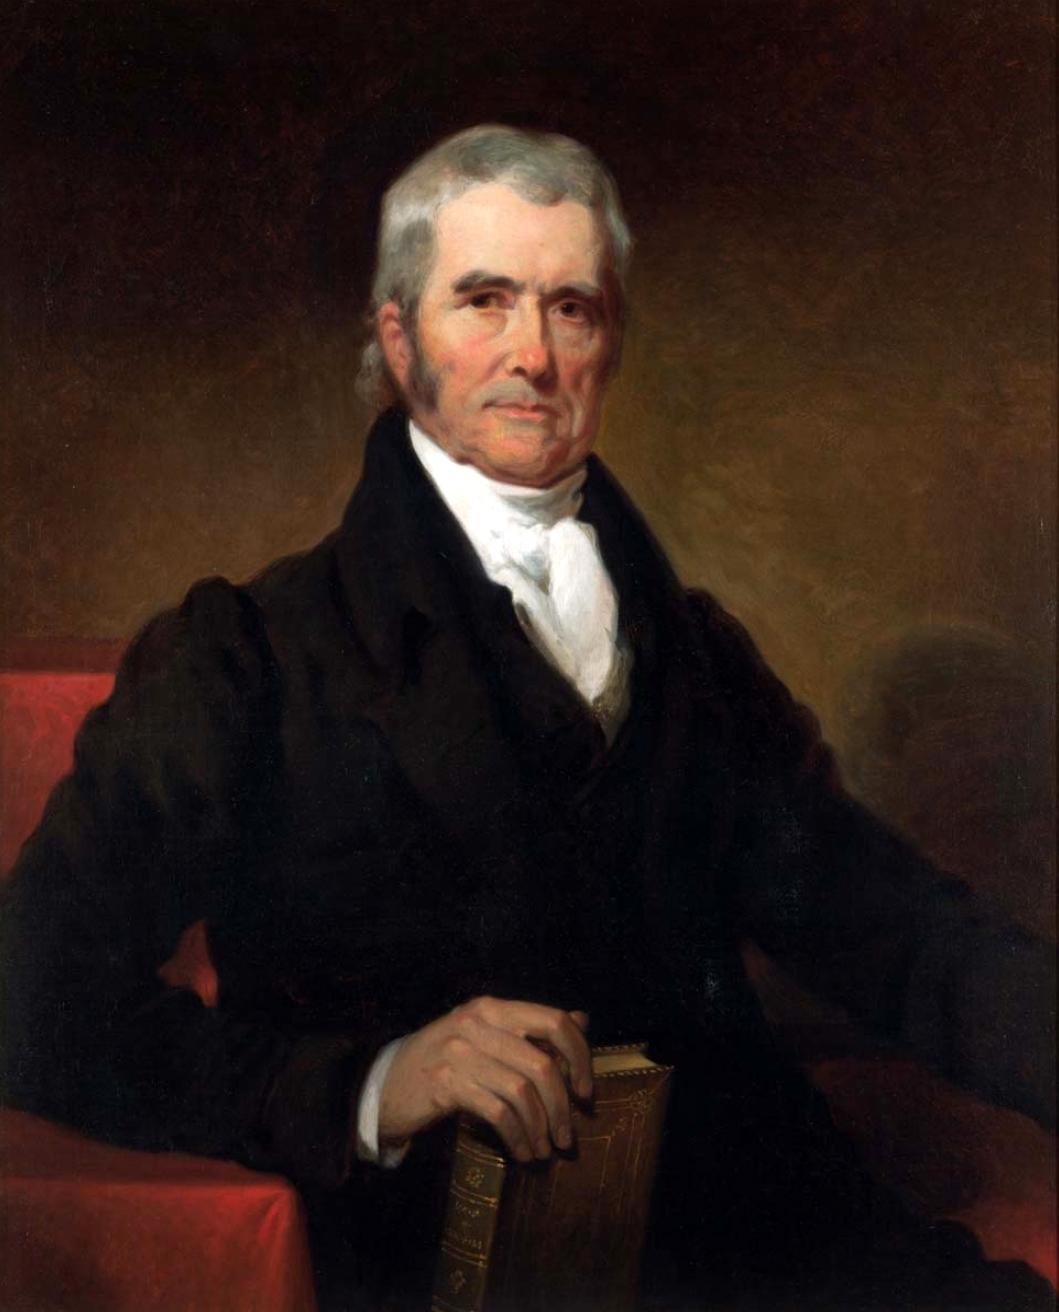 an introduction to the life of john marshall the great chief justice The chief justice crafted an introduction to the dissent in the fashion of  and john marshall,  roberts will be remembered as one of the great chief.